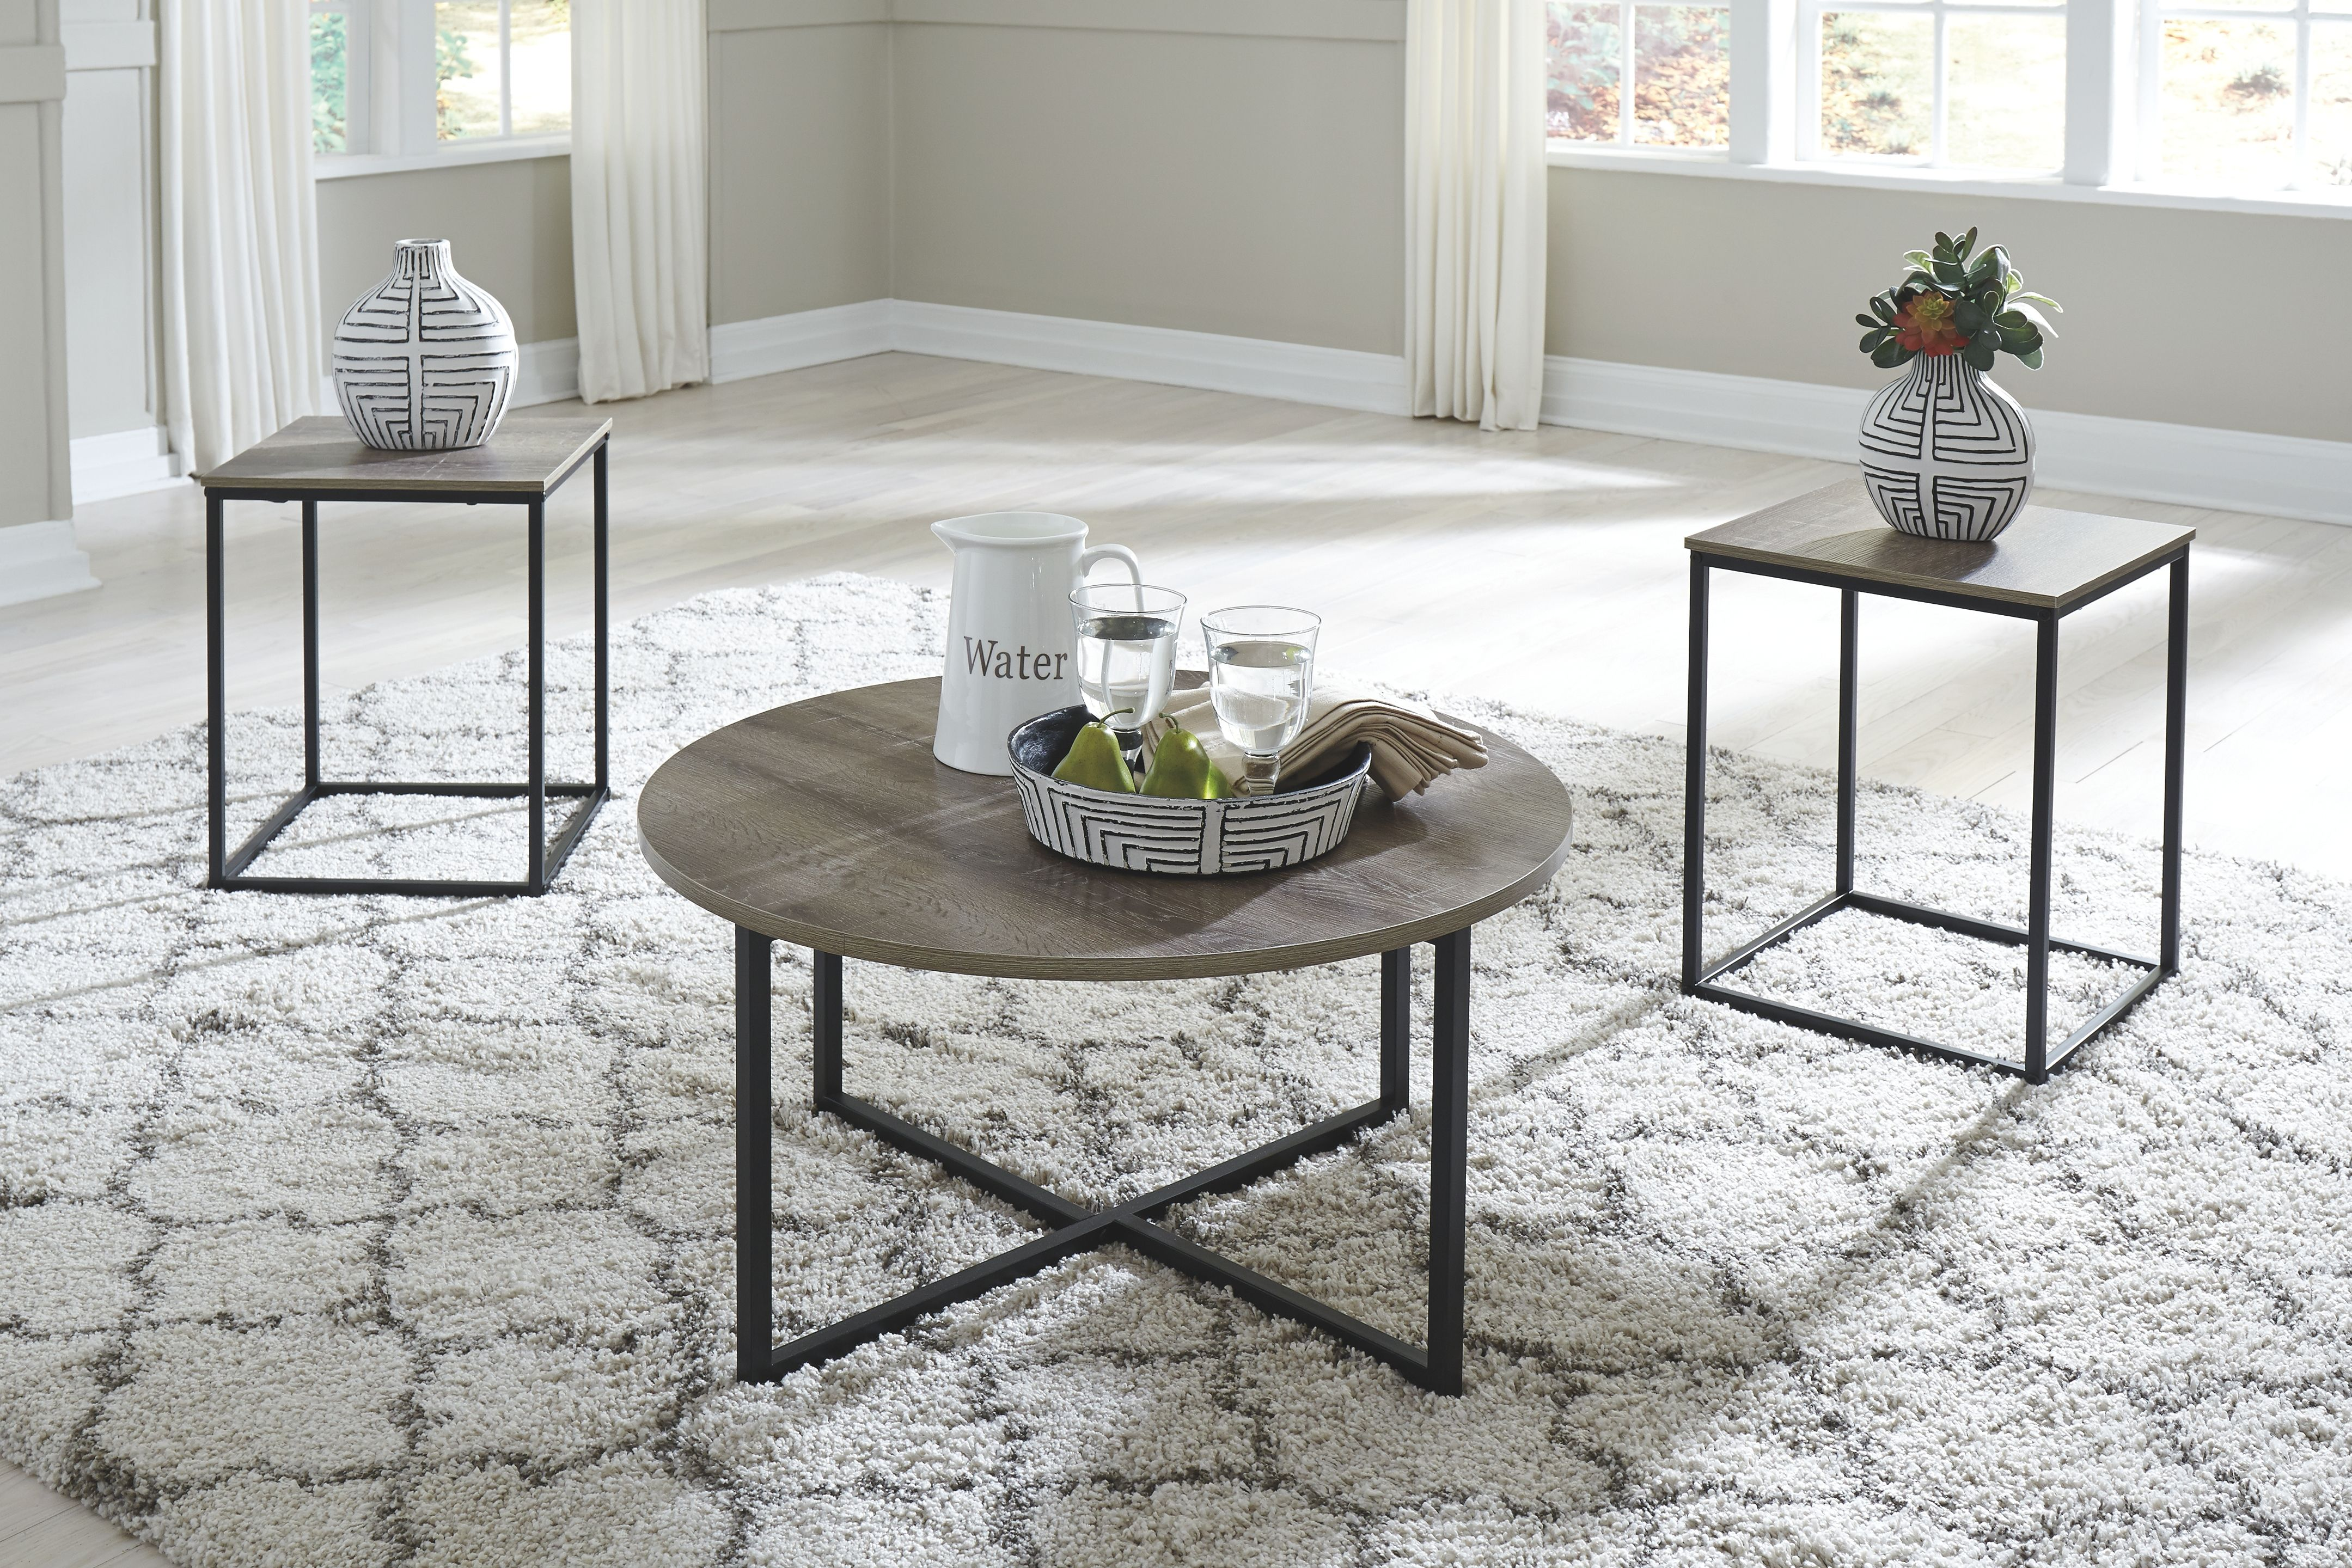 Wadeworth Table Set Of 3 Two Tone Living Room Table Sets End Table Sets Table Settings